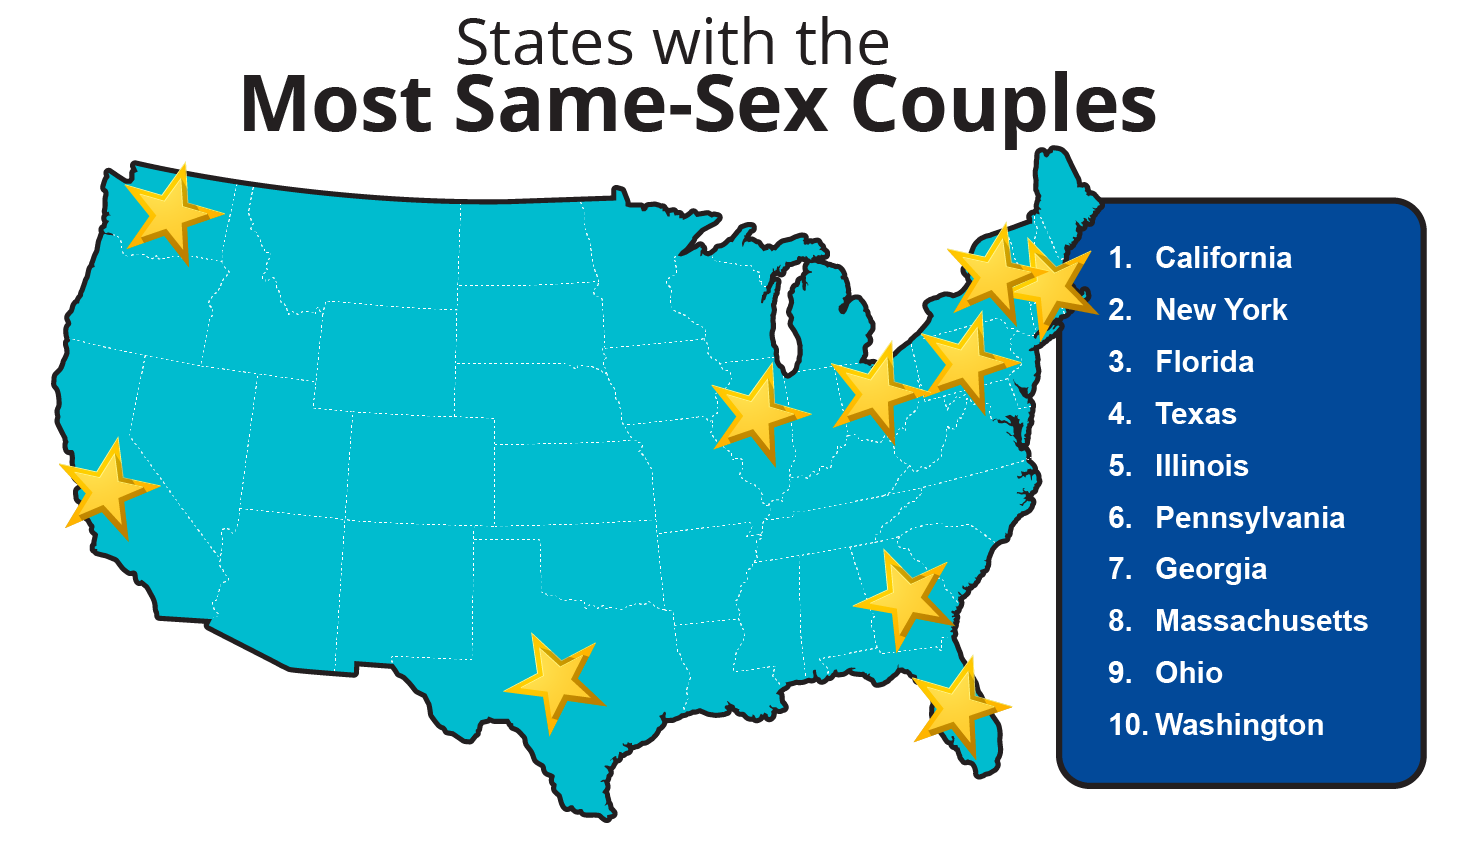 States with the most same-sex couples.